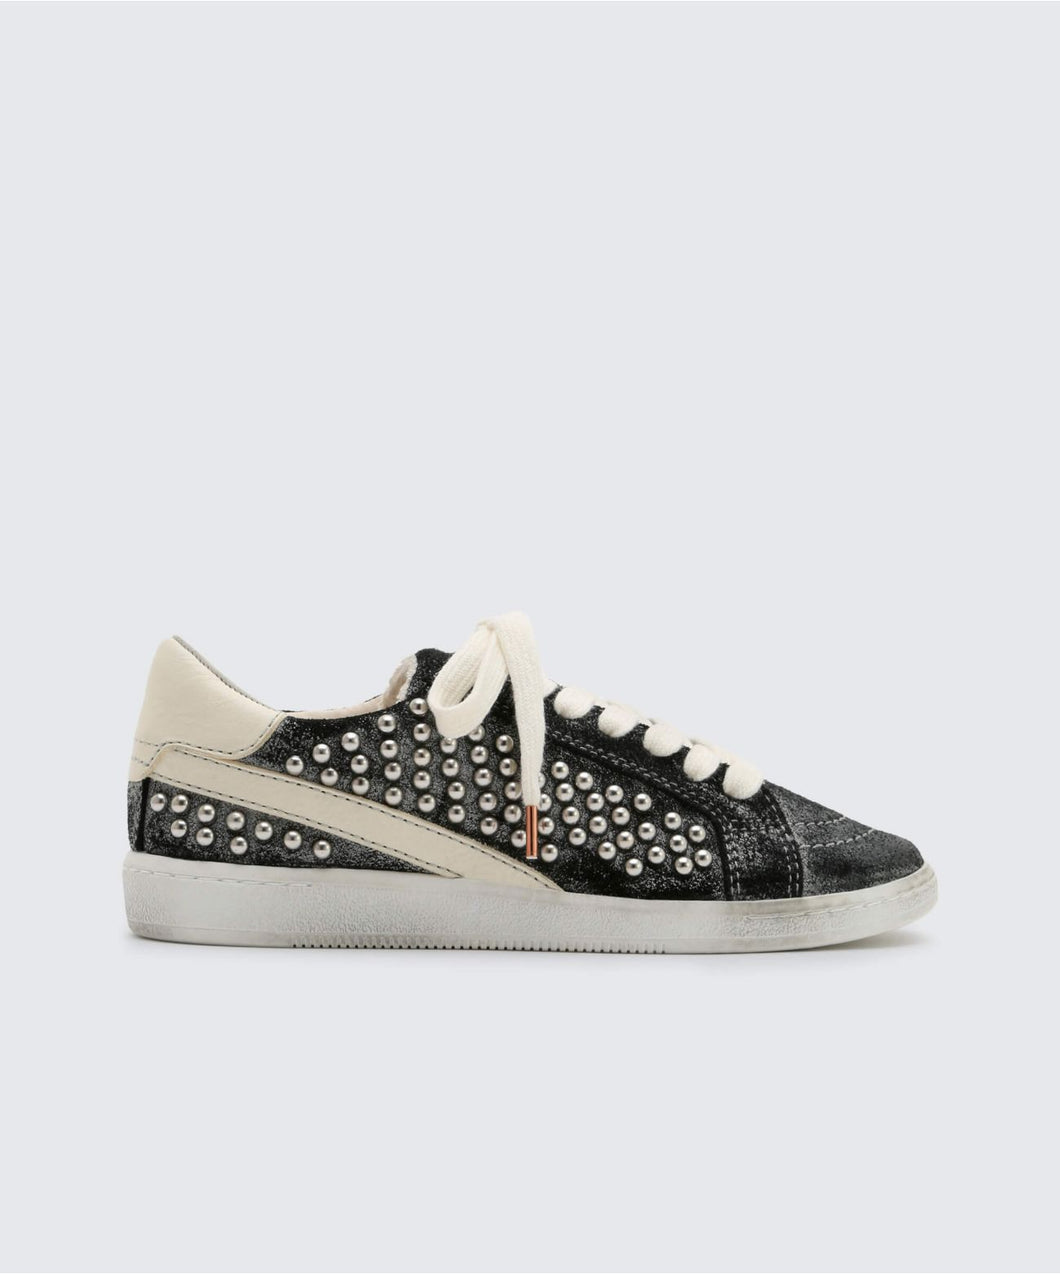 NINO STUDDED SNEAKERS BLACK -   Dolce Vita